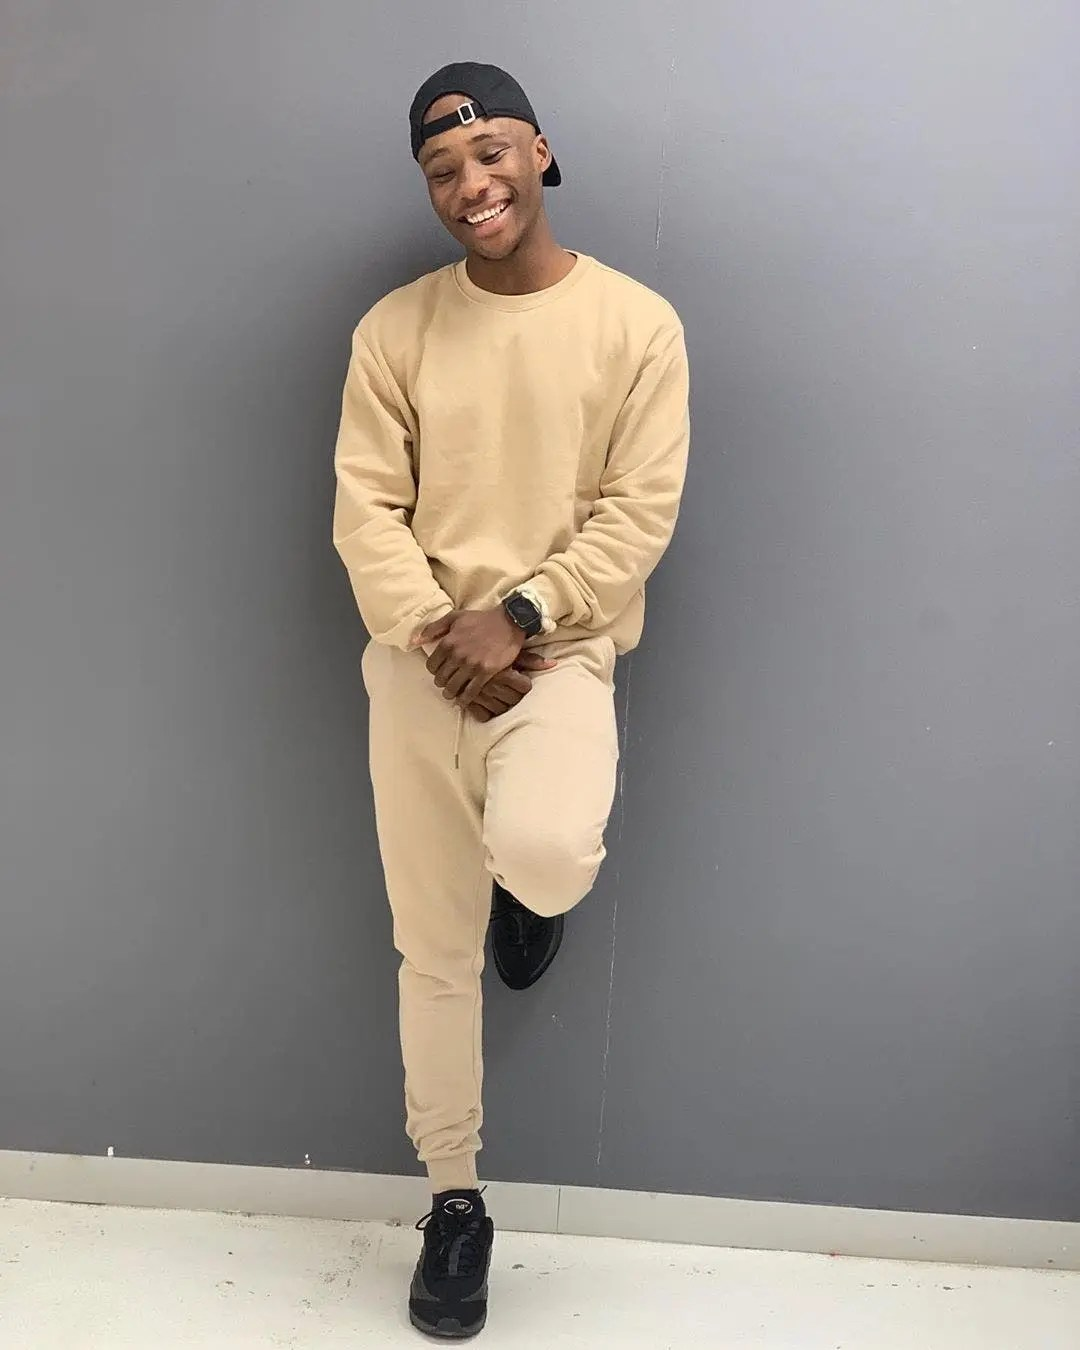 Zamani Mbatha, brother to Nomzamo Mbatha is set to make his much-awaited debut on etv's hit soapie Rhythm City as Pule.